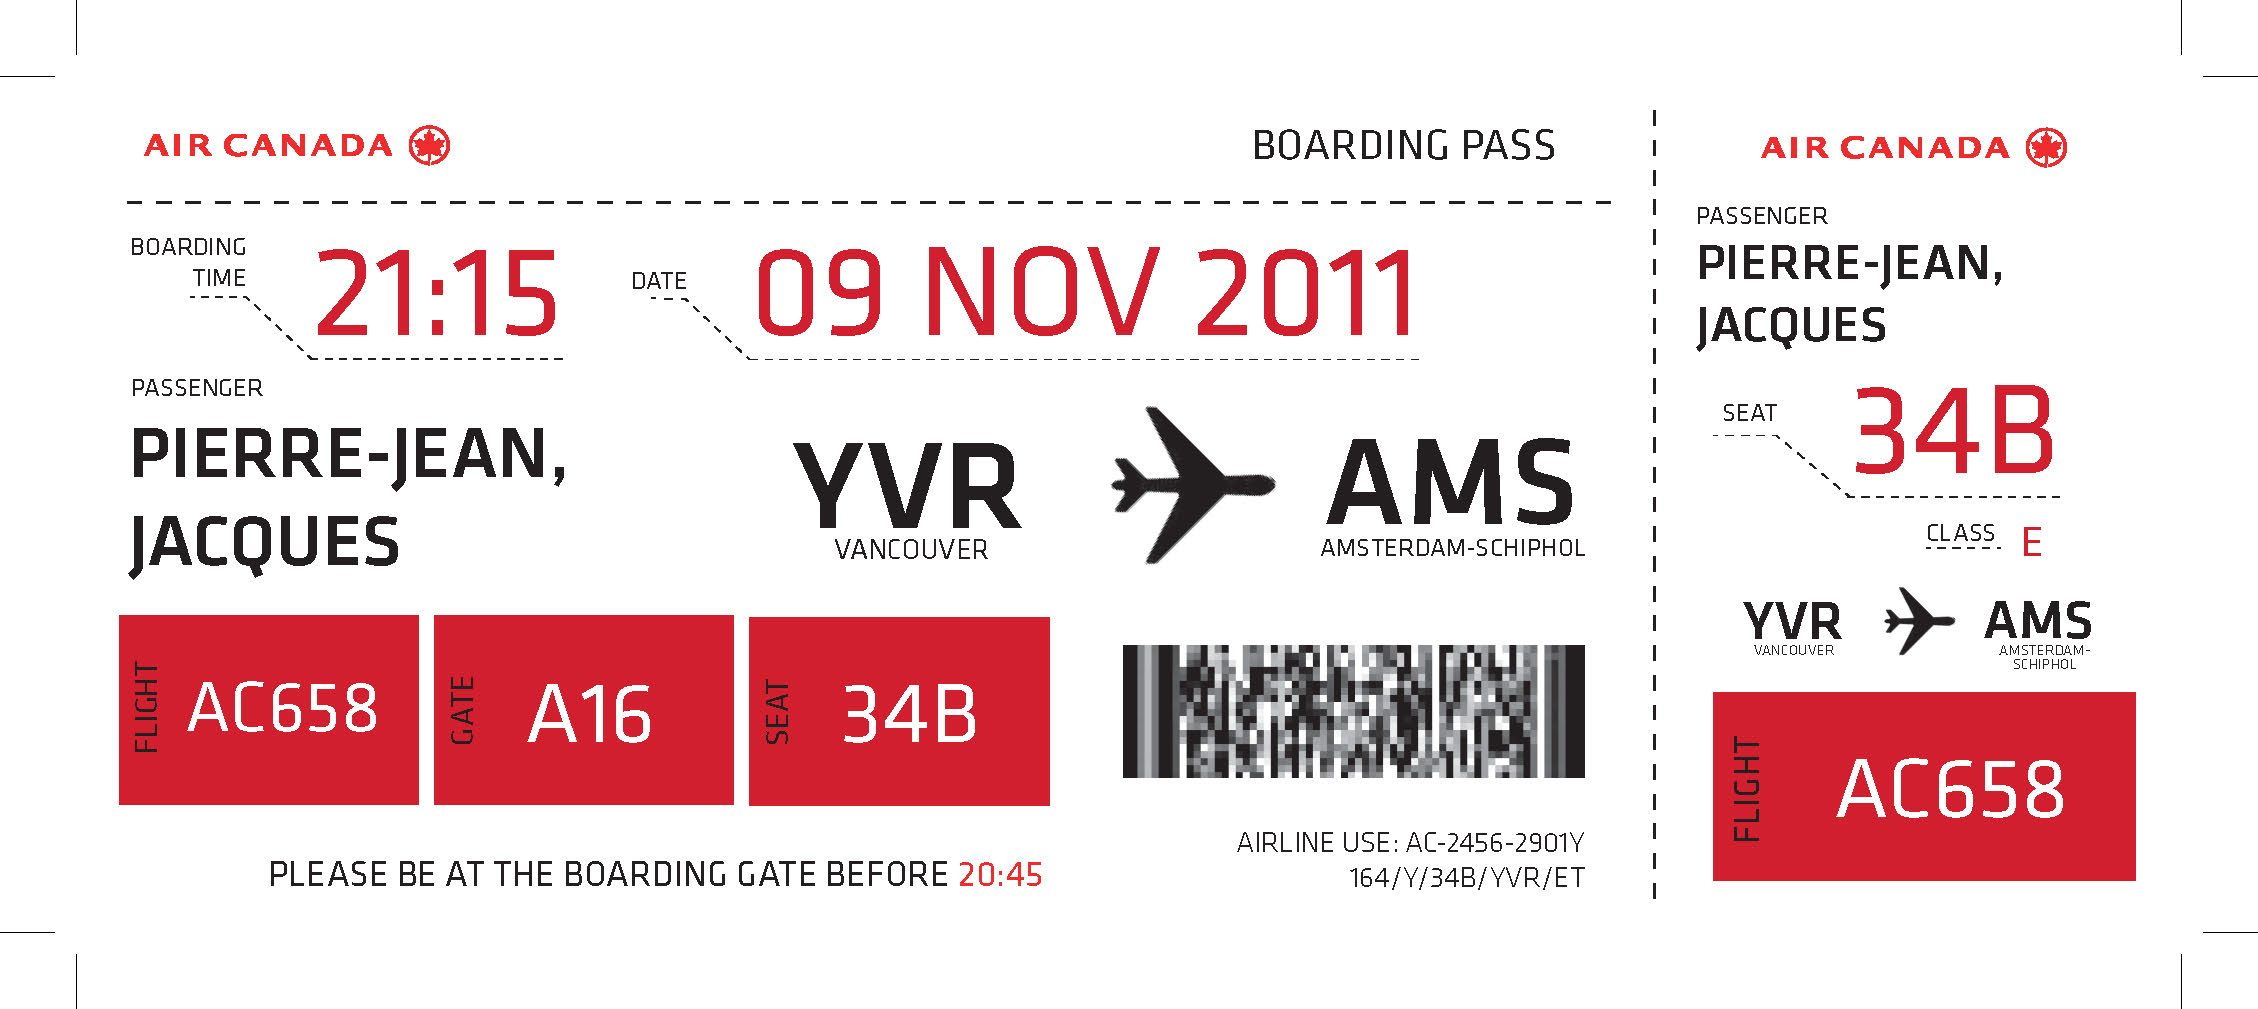 Air Canada Boarding Pass